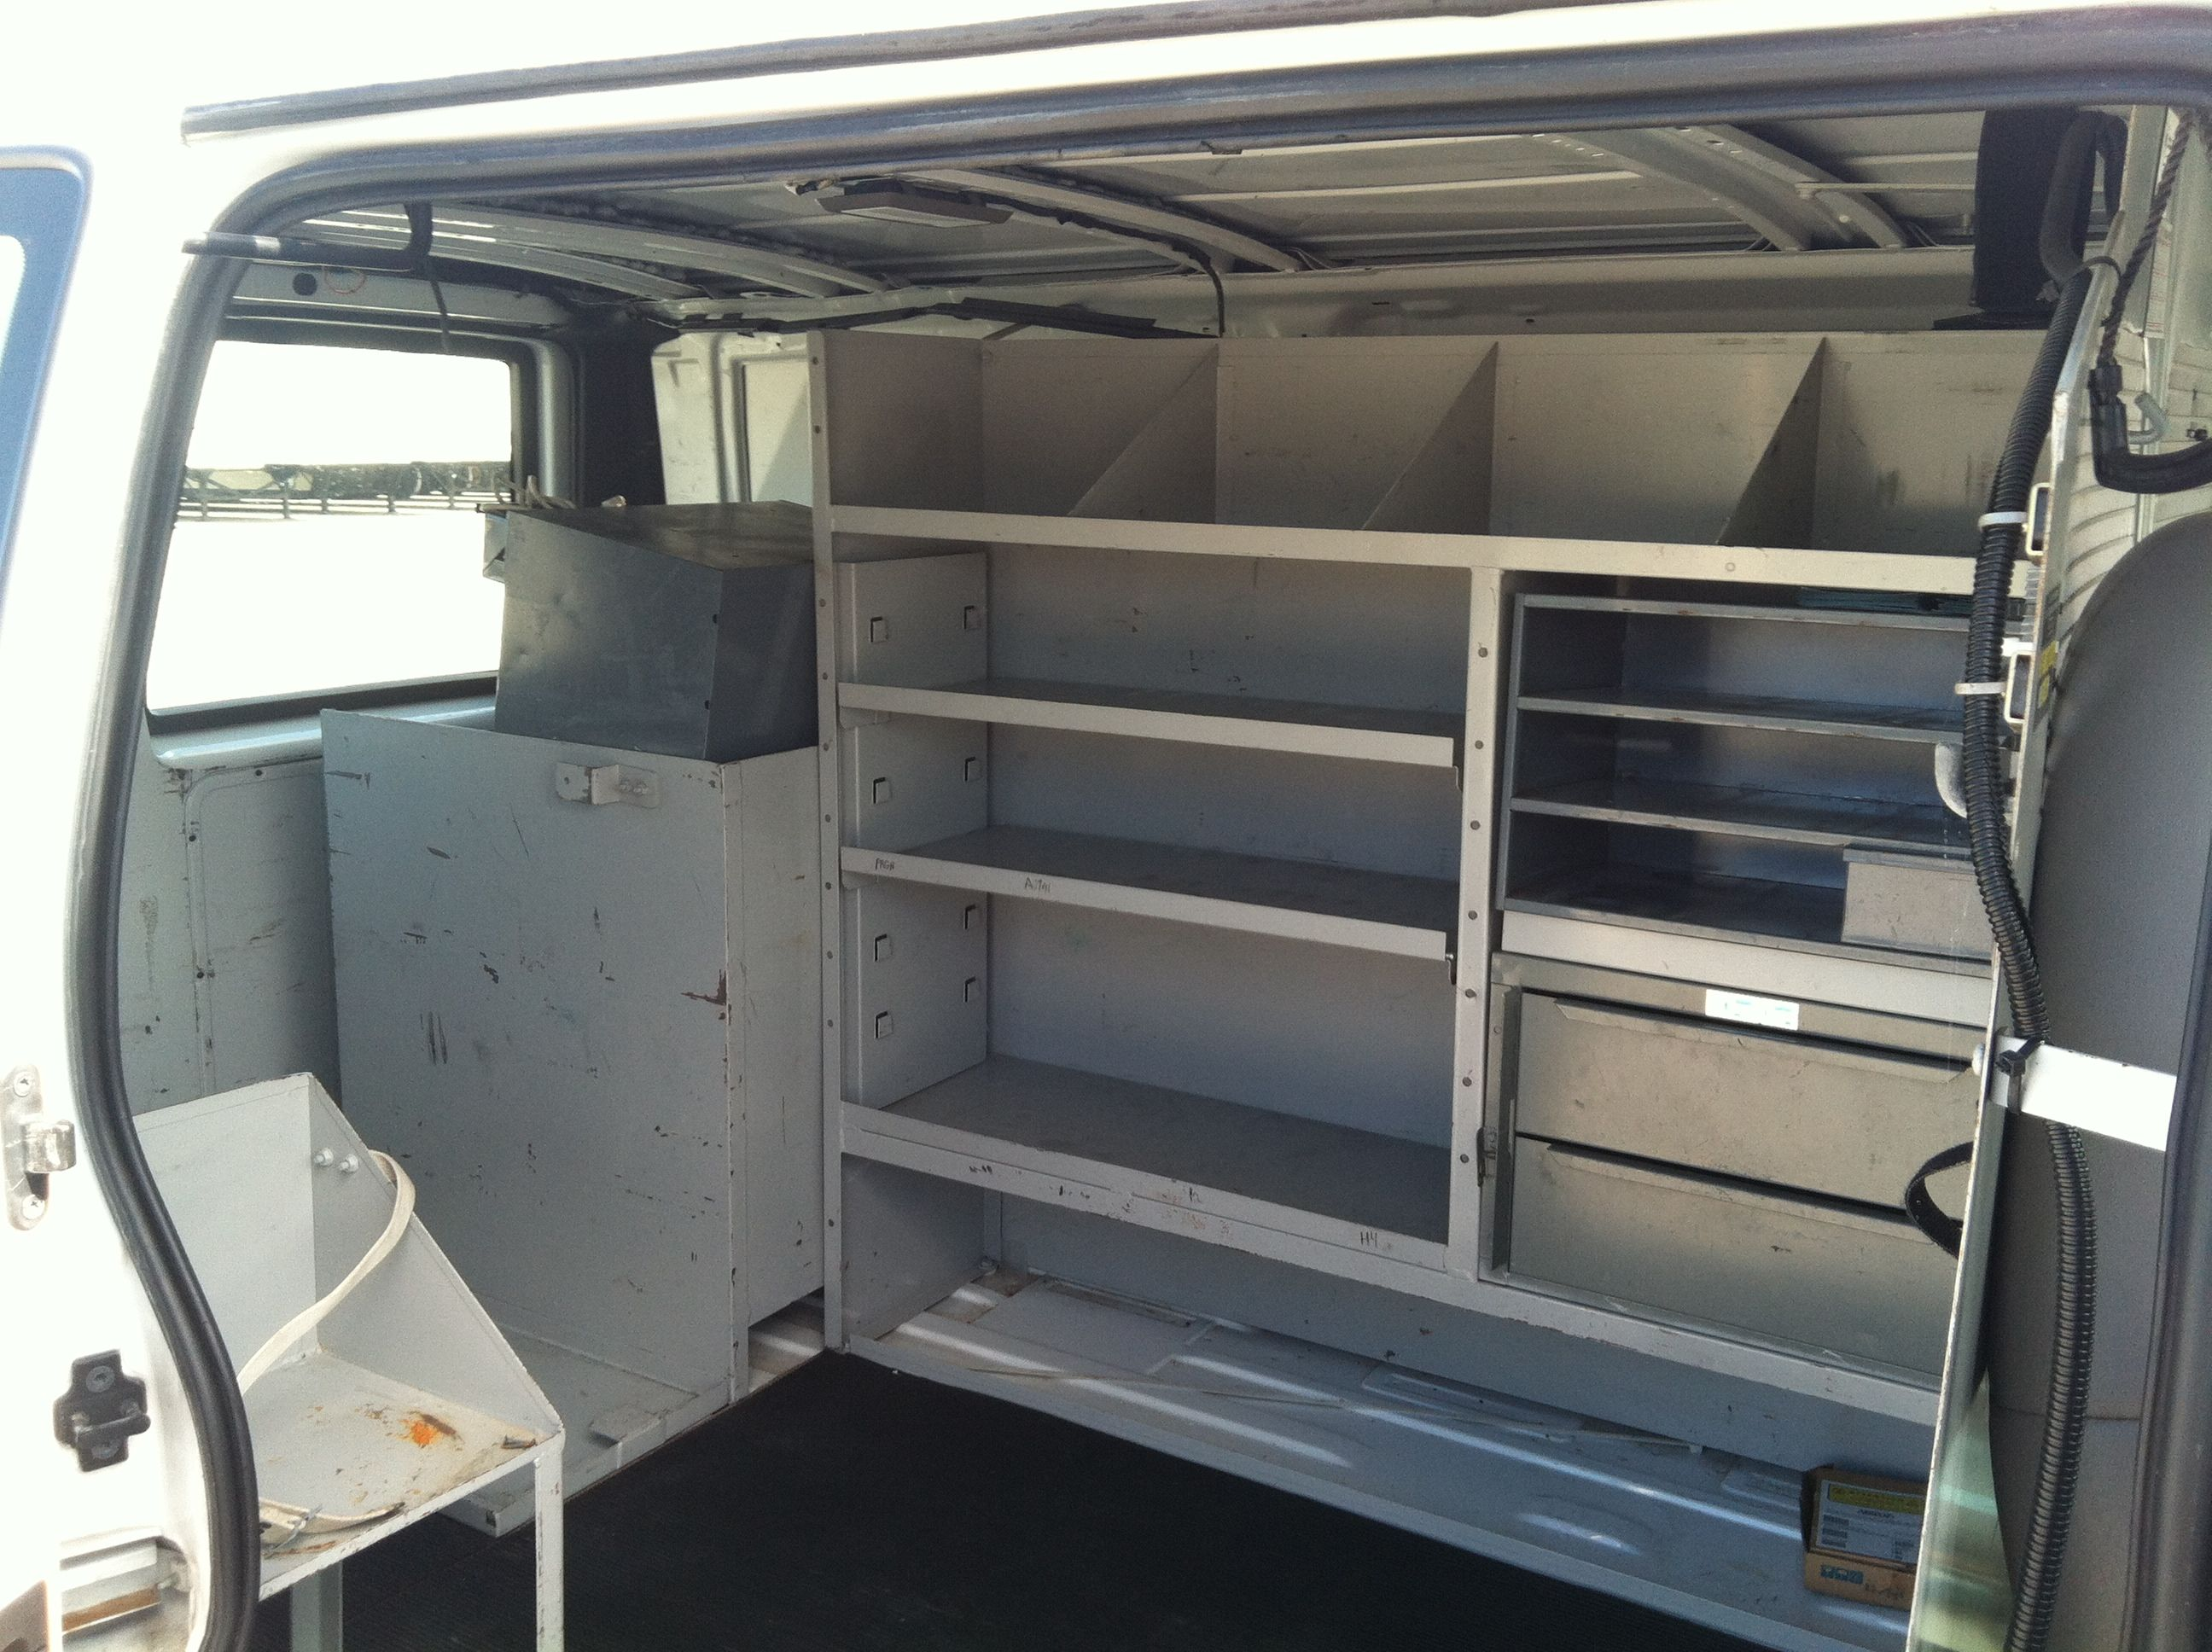 The Aluminum Shelves Will Hold Alot Of Stuff Here!! Living In A